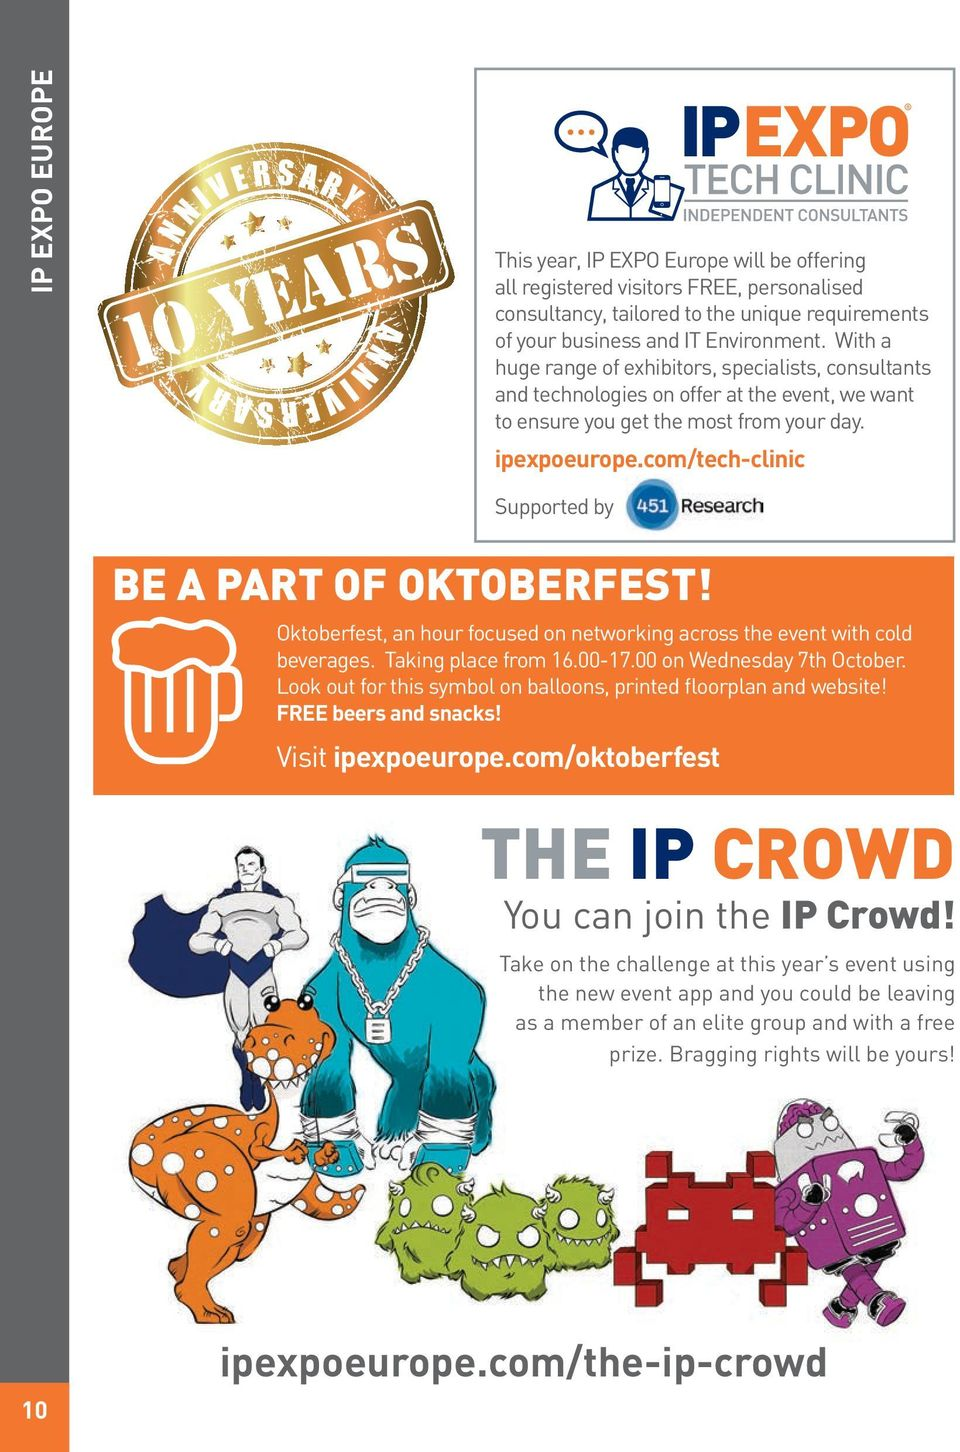 com/tech-clinic Supported by BE A PART OF OKTOBERFEST! Oktoberfest, an hour focused on networking across the event with cold beverages. Taking place from 16.00-17.00 on Wednesday 7th October.